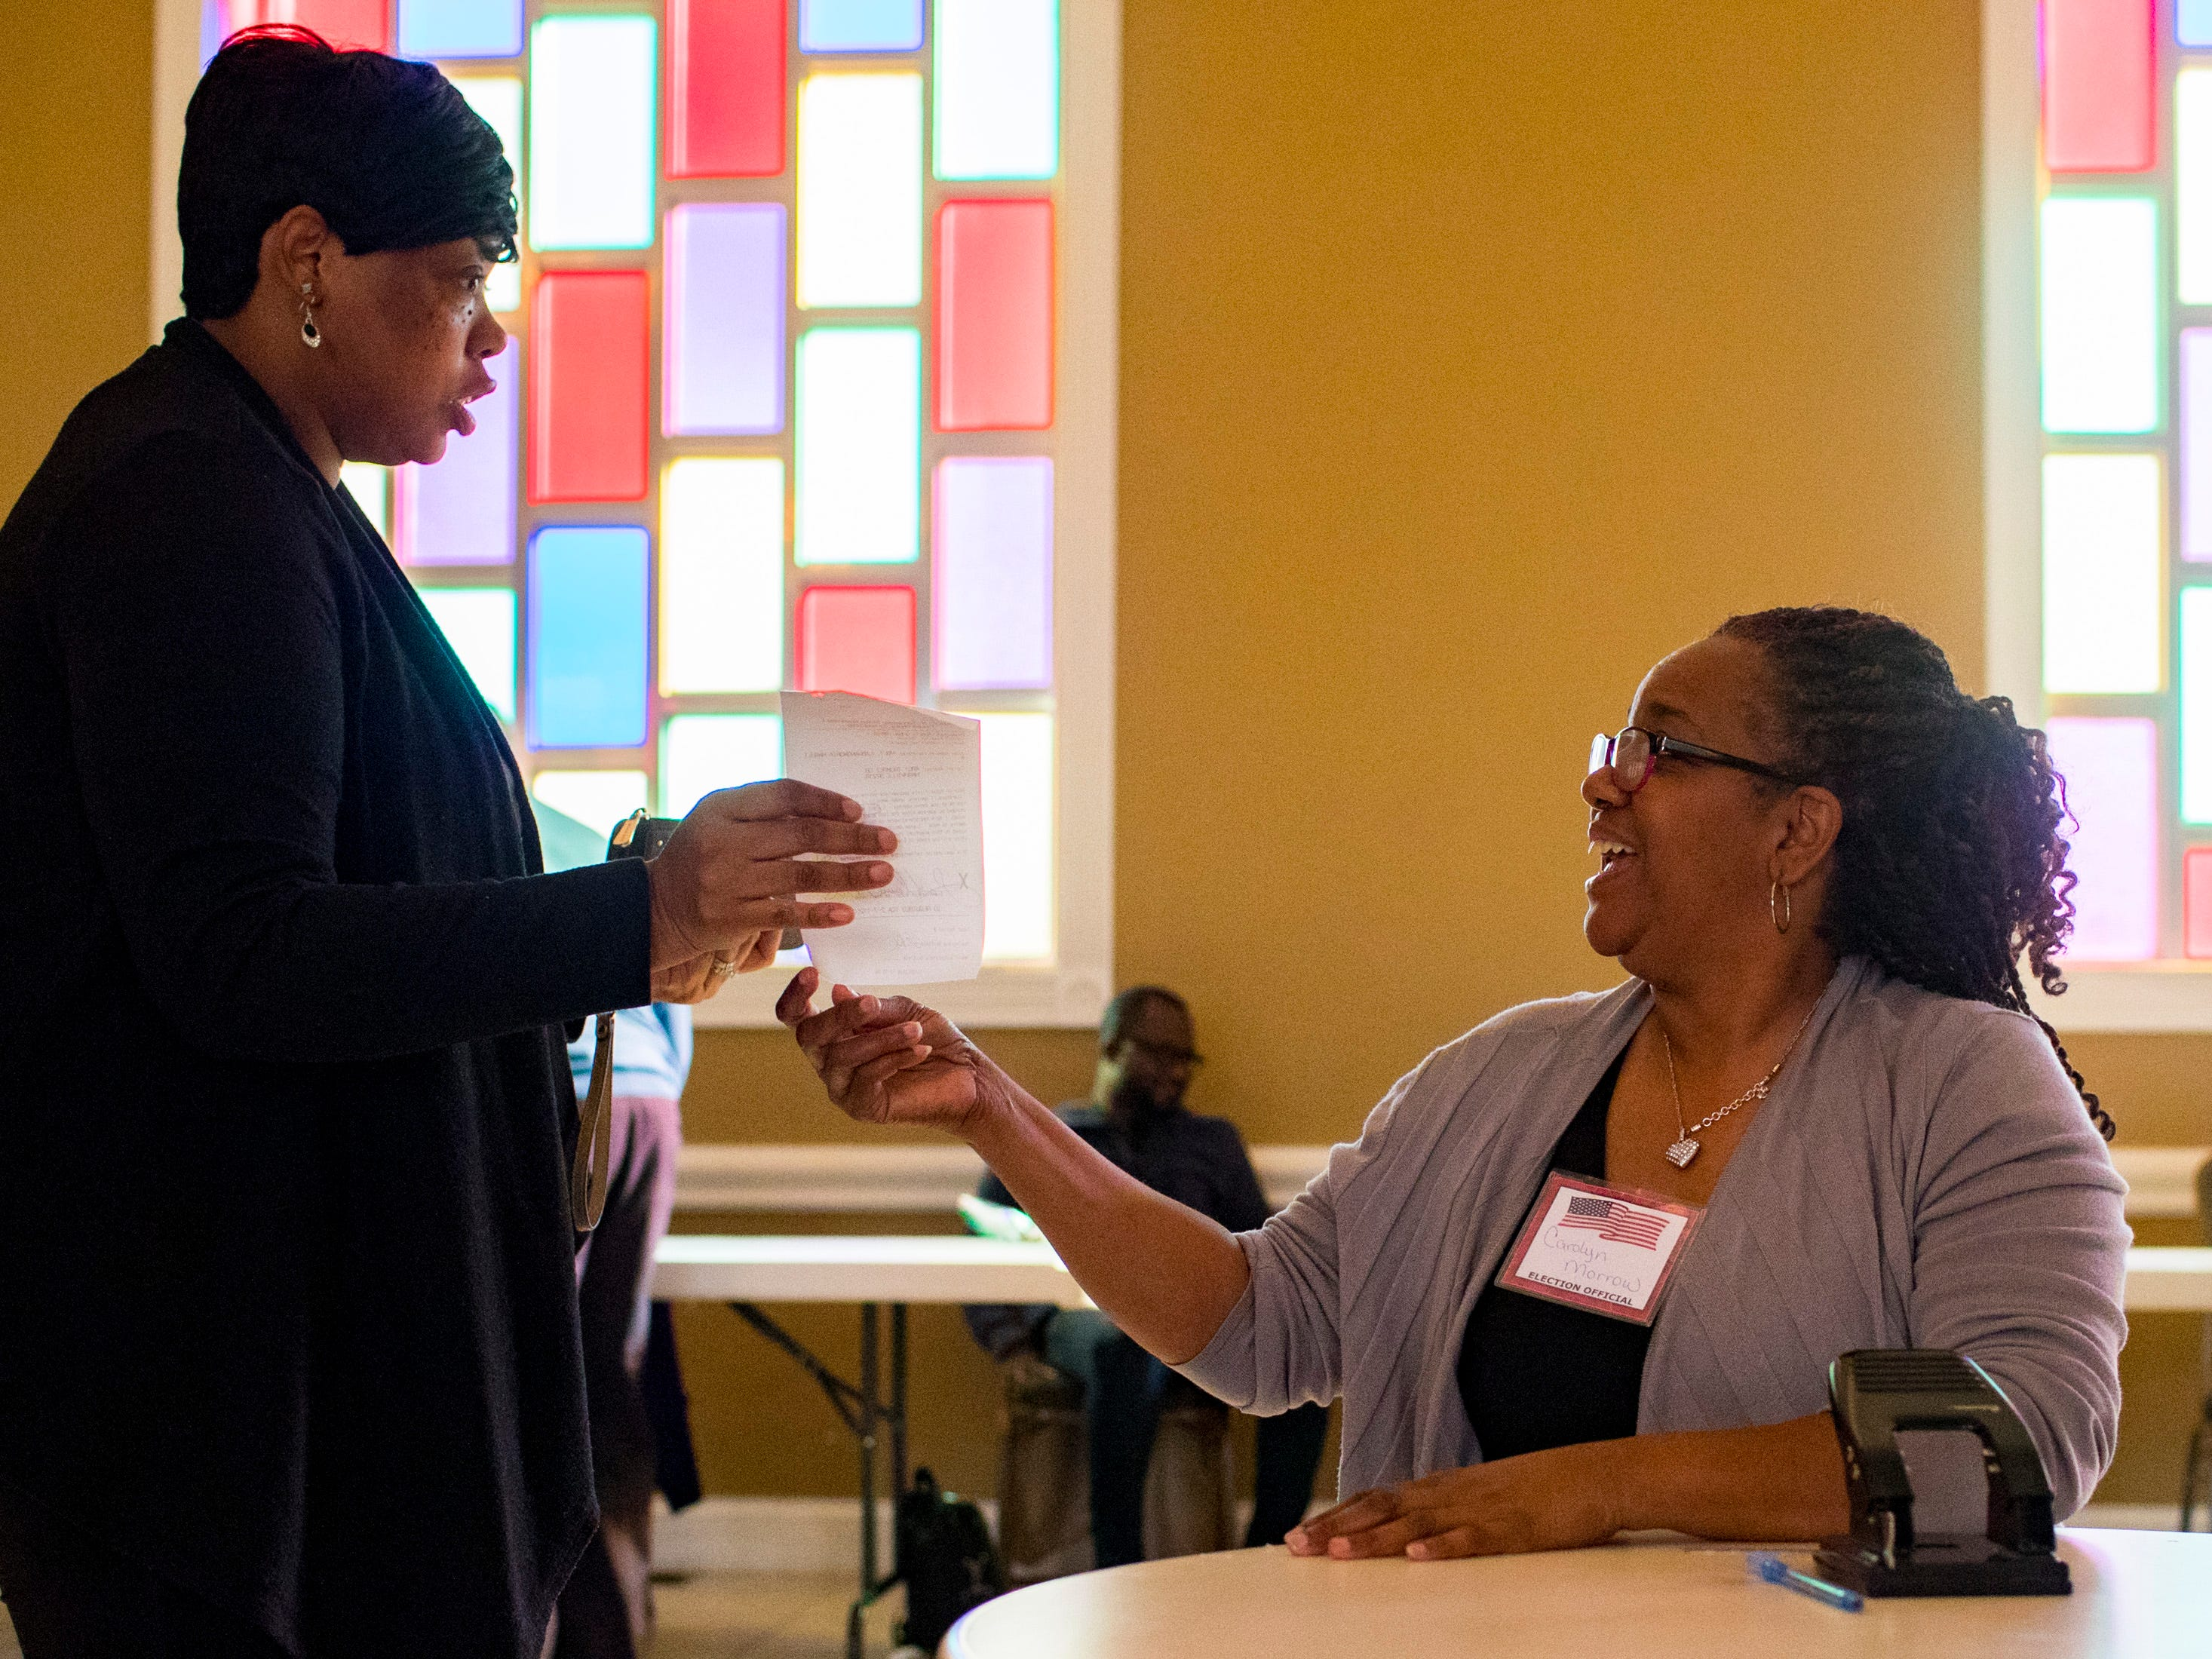 Election official Carolyn Morrow helps a voter at the Cathedral of Praise polling place in Nashville on Tuesday, Nov. 6, 2018.